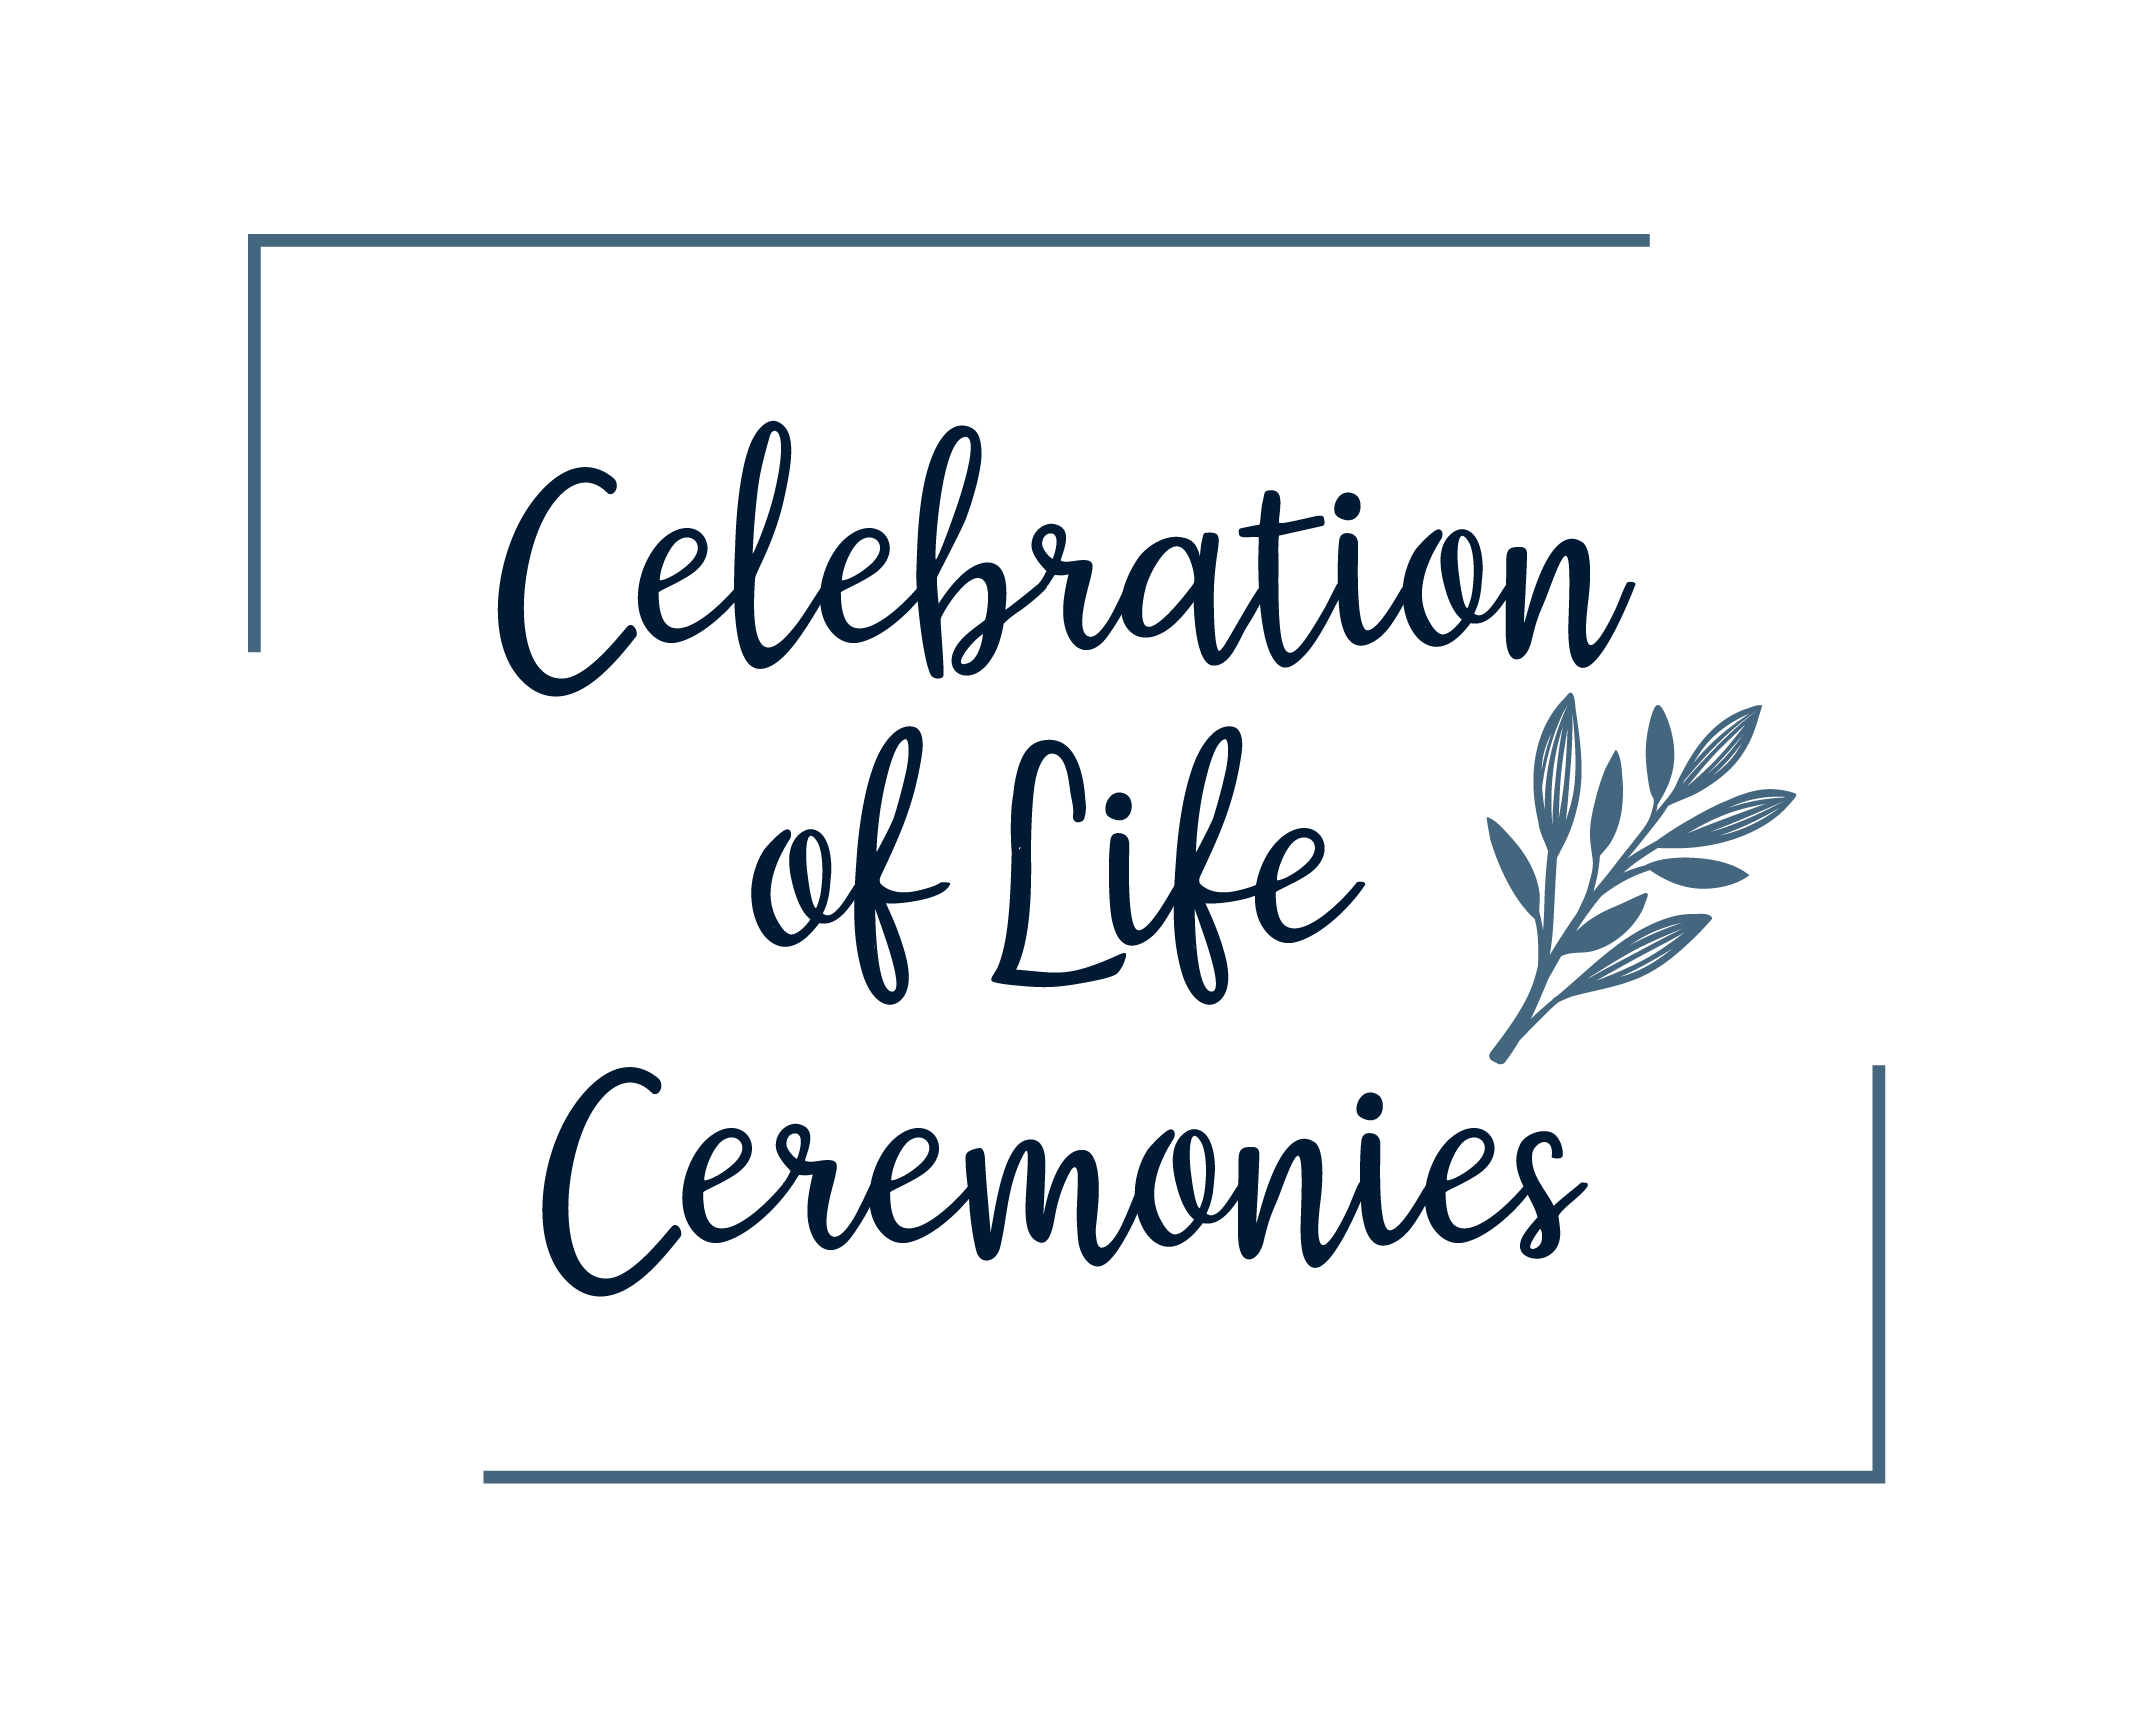 Celebration of Life Ceremonies Kent